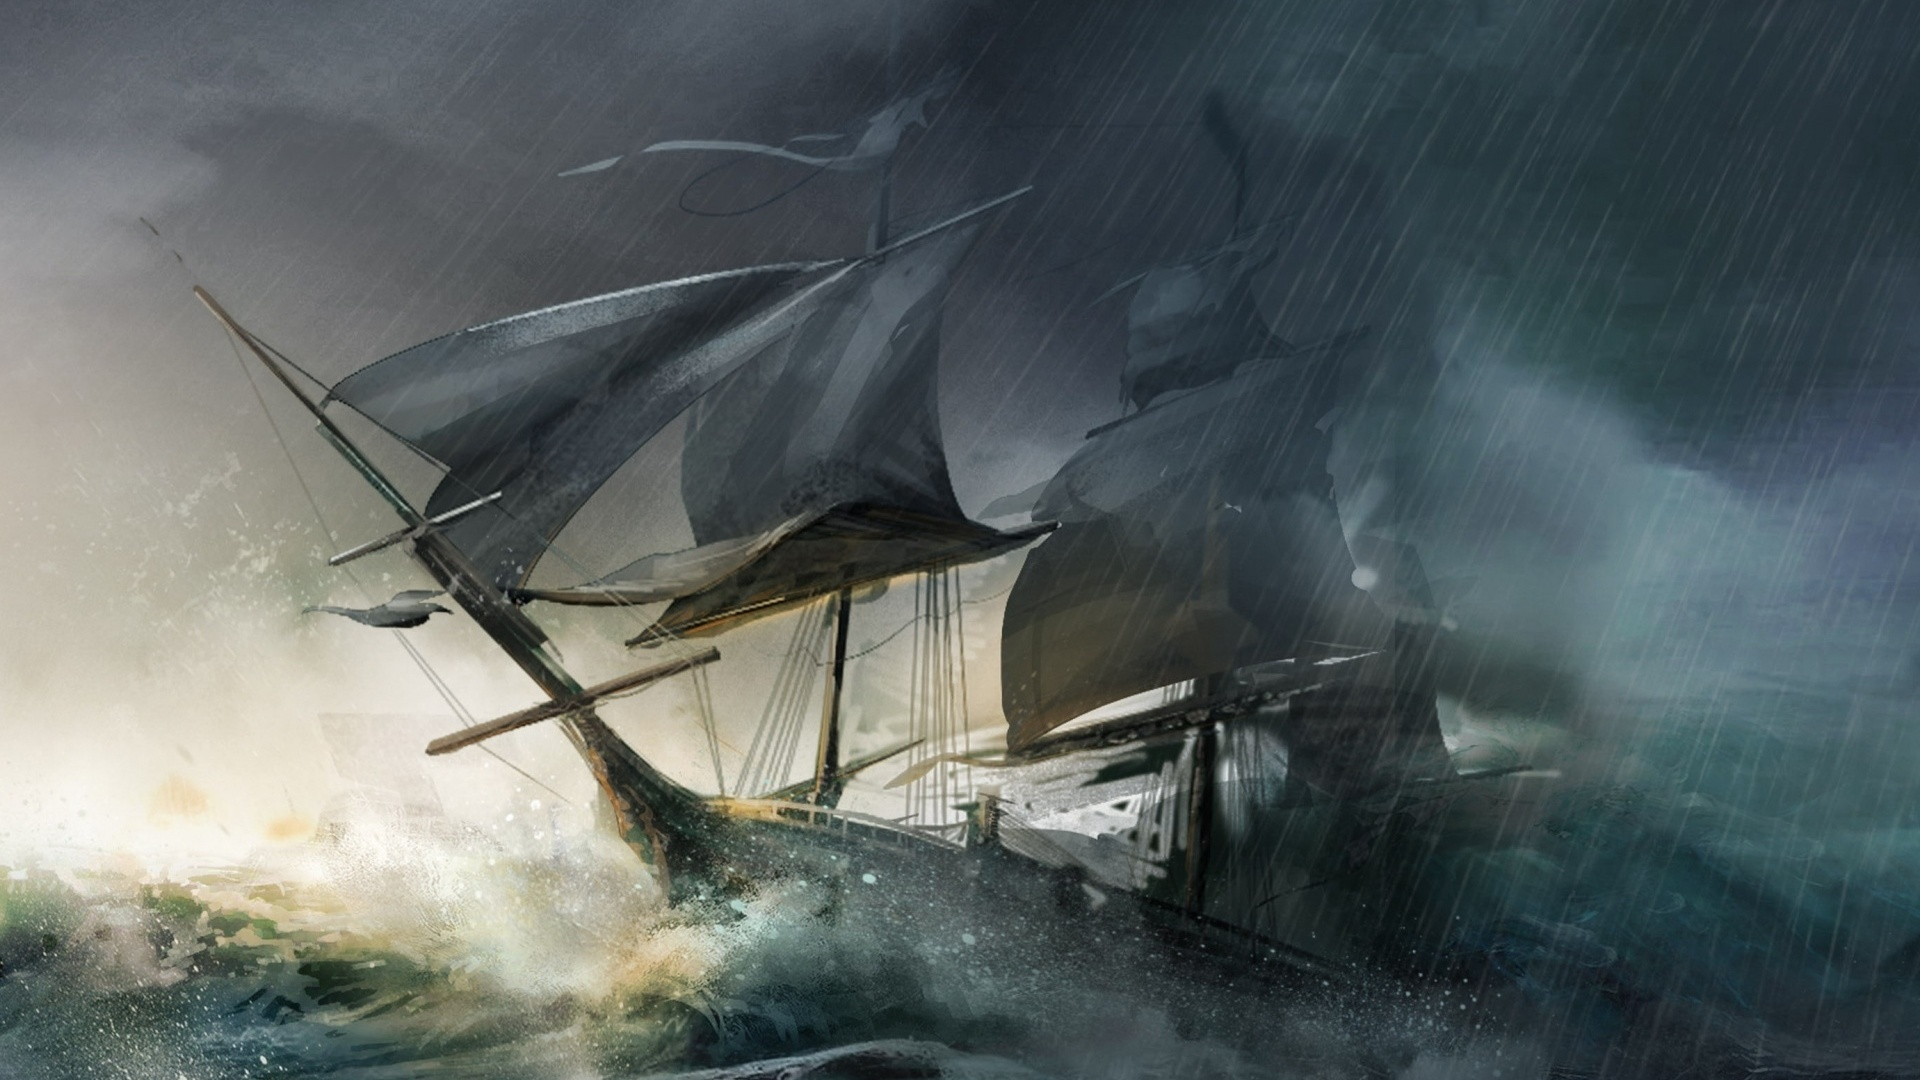 Storm Pictures   Wallpaper High Definition High Quality Widescreen 1920x1080